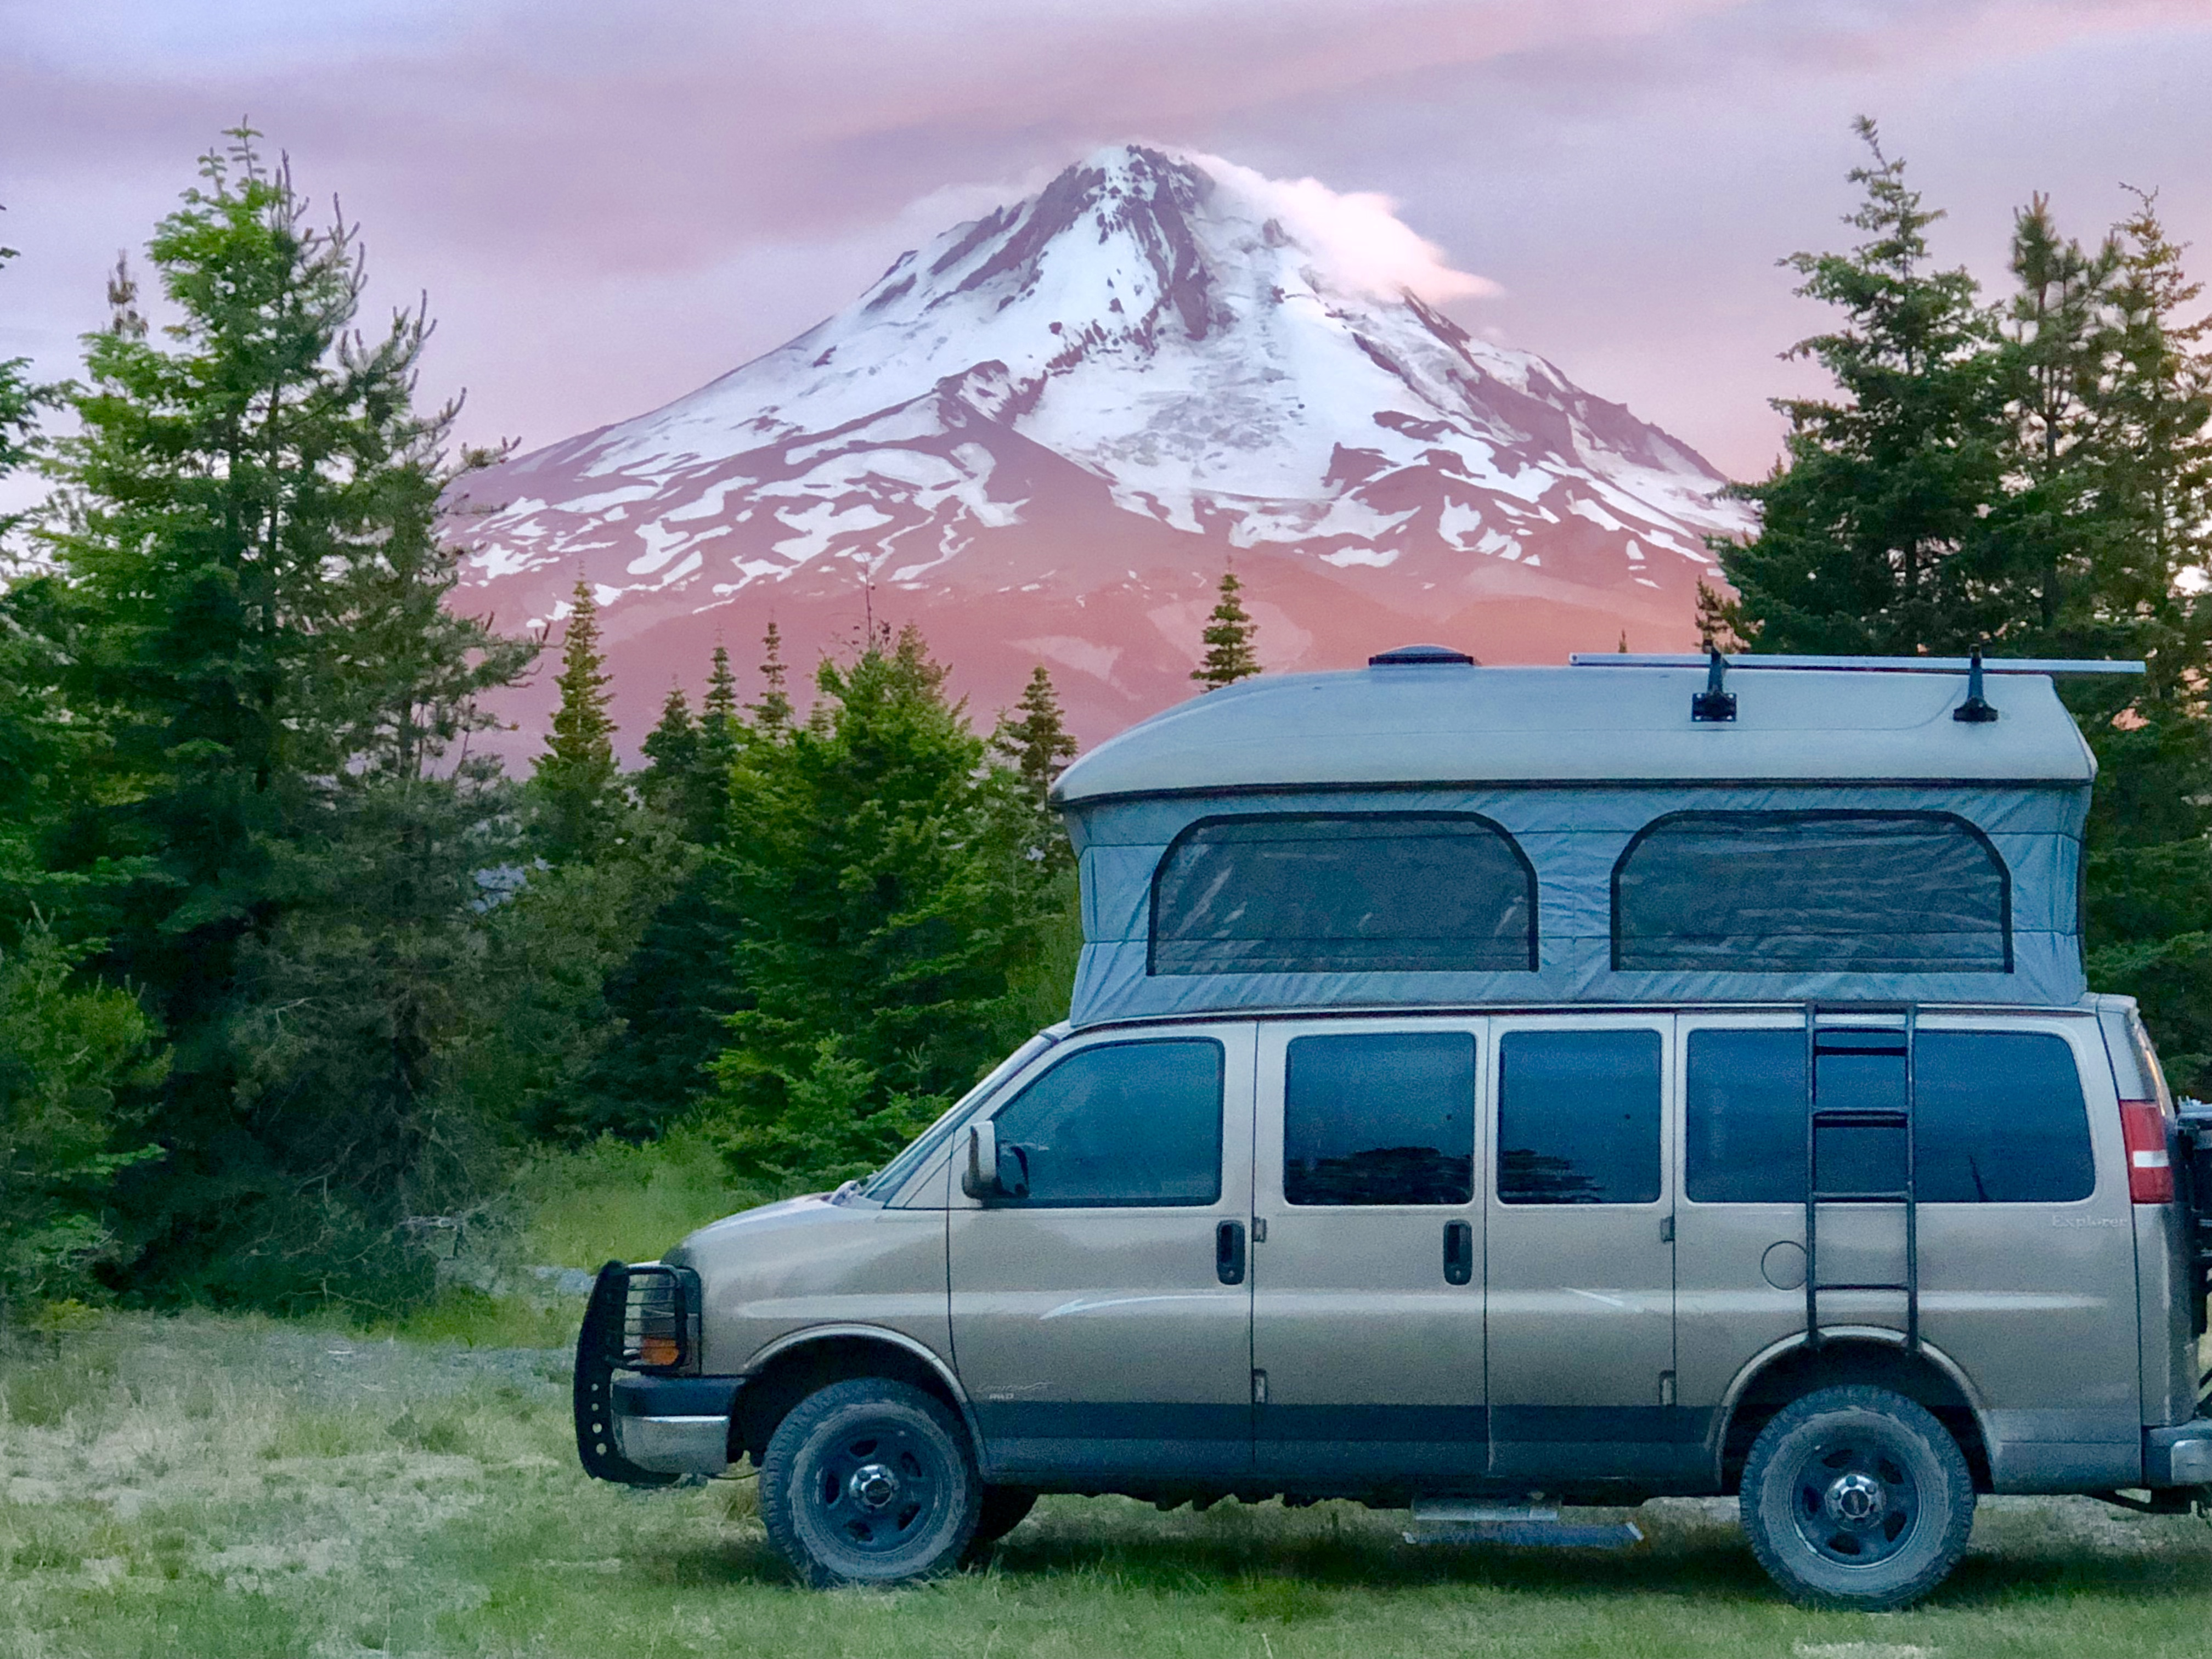 Where to buy your dream camper online